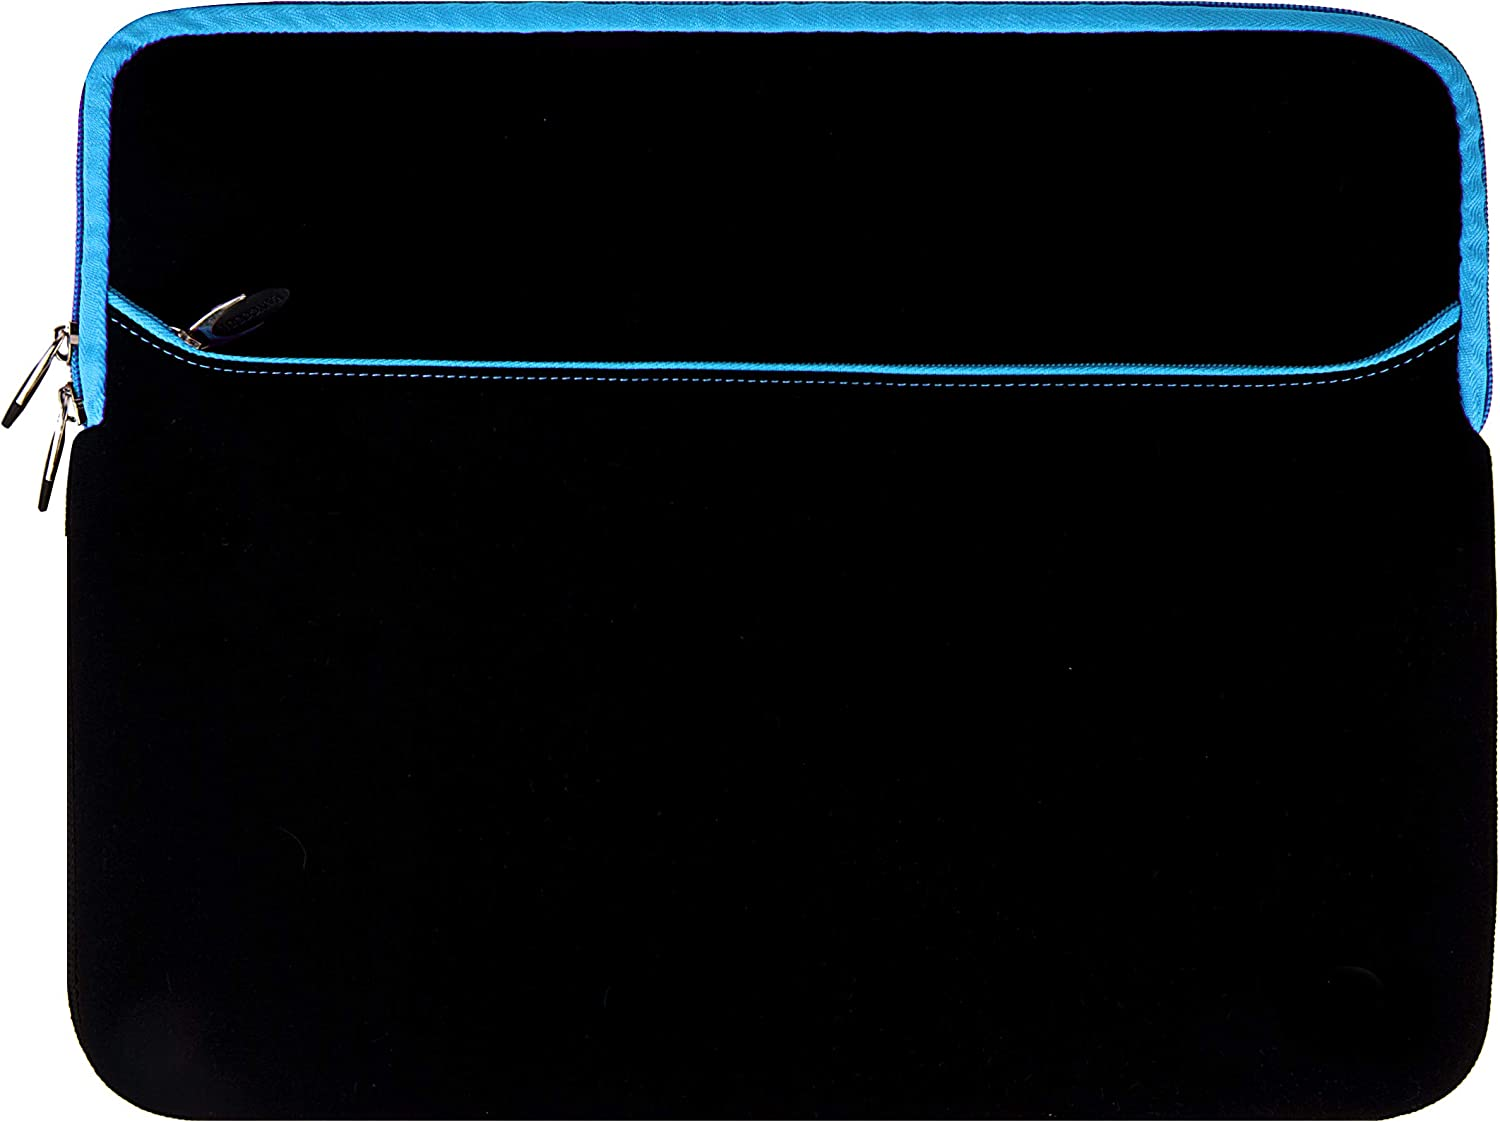 Laptop Sleeve Blue 15.6 15 inch for Dell G3 3579 3590, Inspiron 15 7586 7580 3573 7572 7573 5575 7590 5582 3585, Latitude 15 5590 5591 3590 5500 5501 3500, Precision 15 3540, Vostro 15 3584 7590